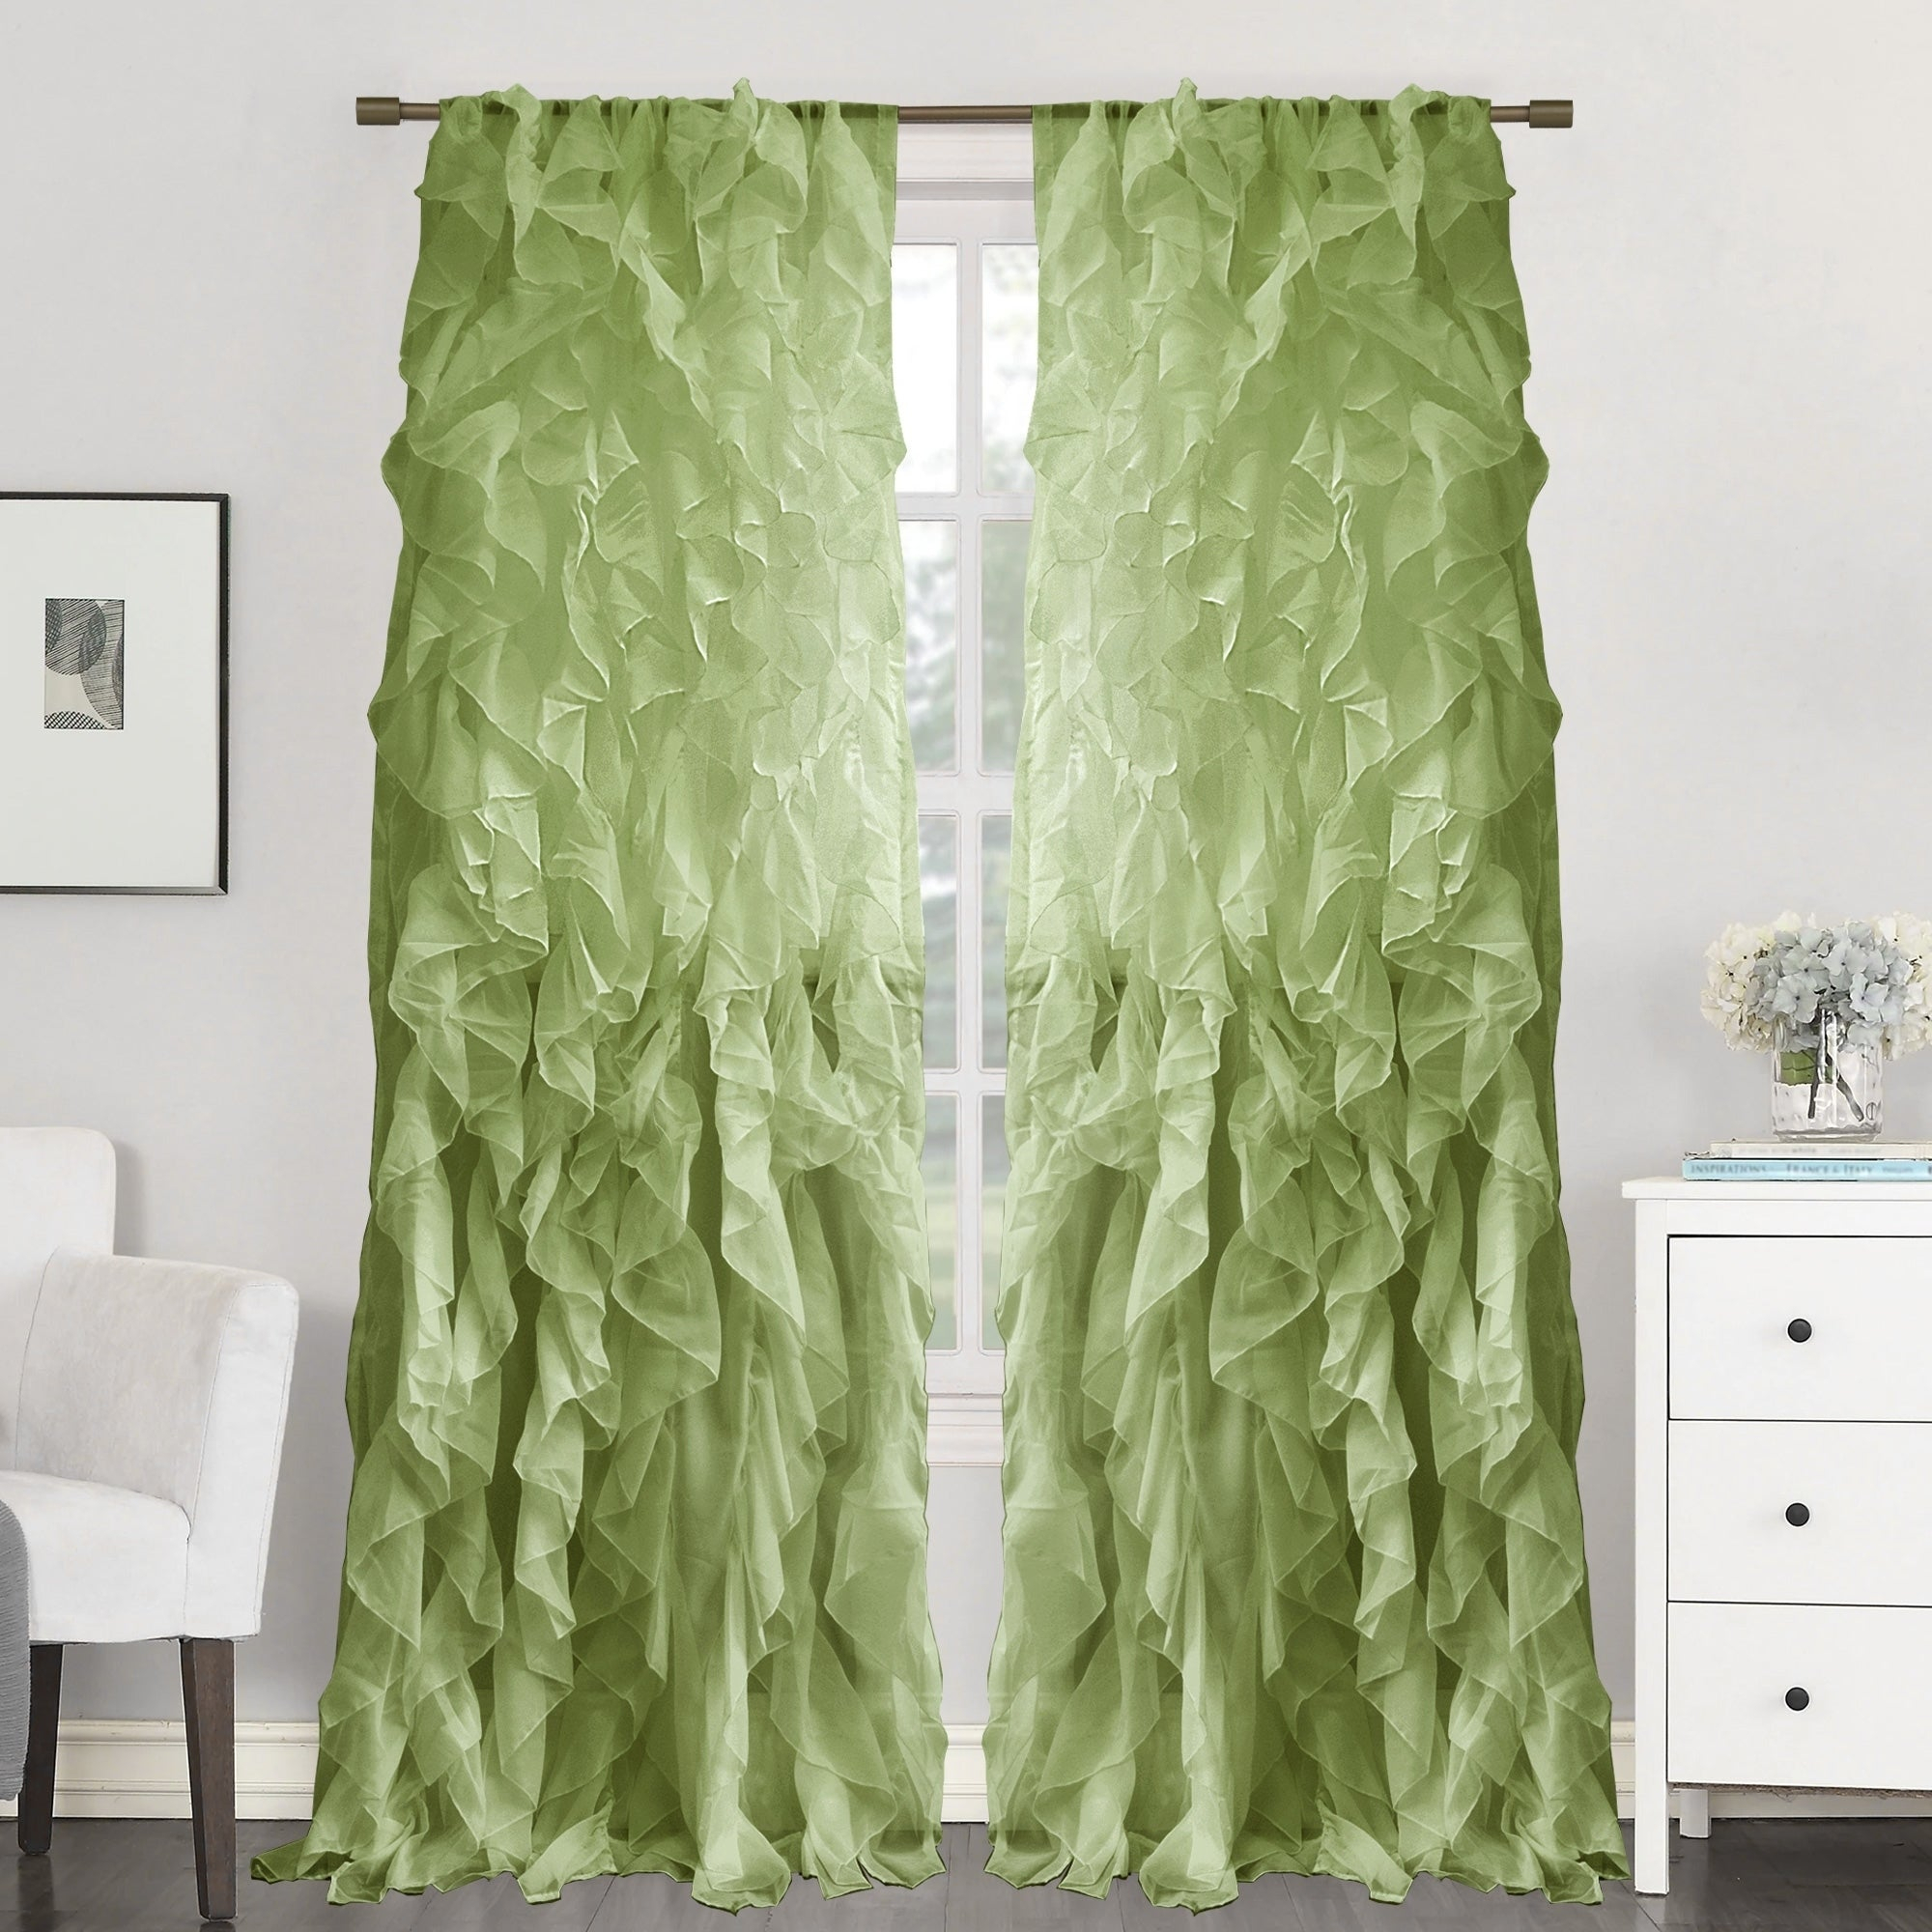 "Sweet Home Collection Sheer Voile Waterfall Ruffled Tier 96 Inch Single Curtain Panel – 96"" Long X 50"" Wide Pertaining To Sheer Voile Ruffled Tier Window Curtain Panels (View 20 of 20)"